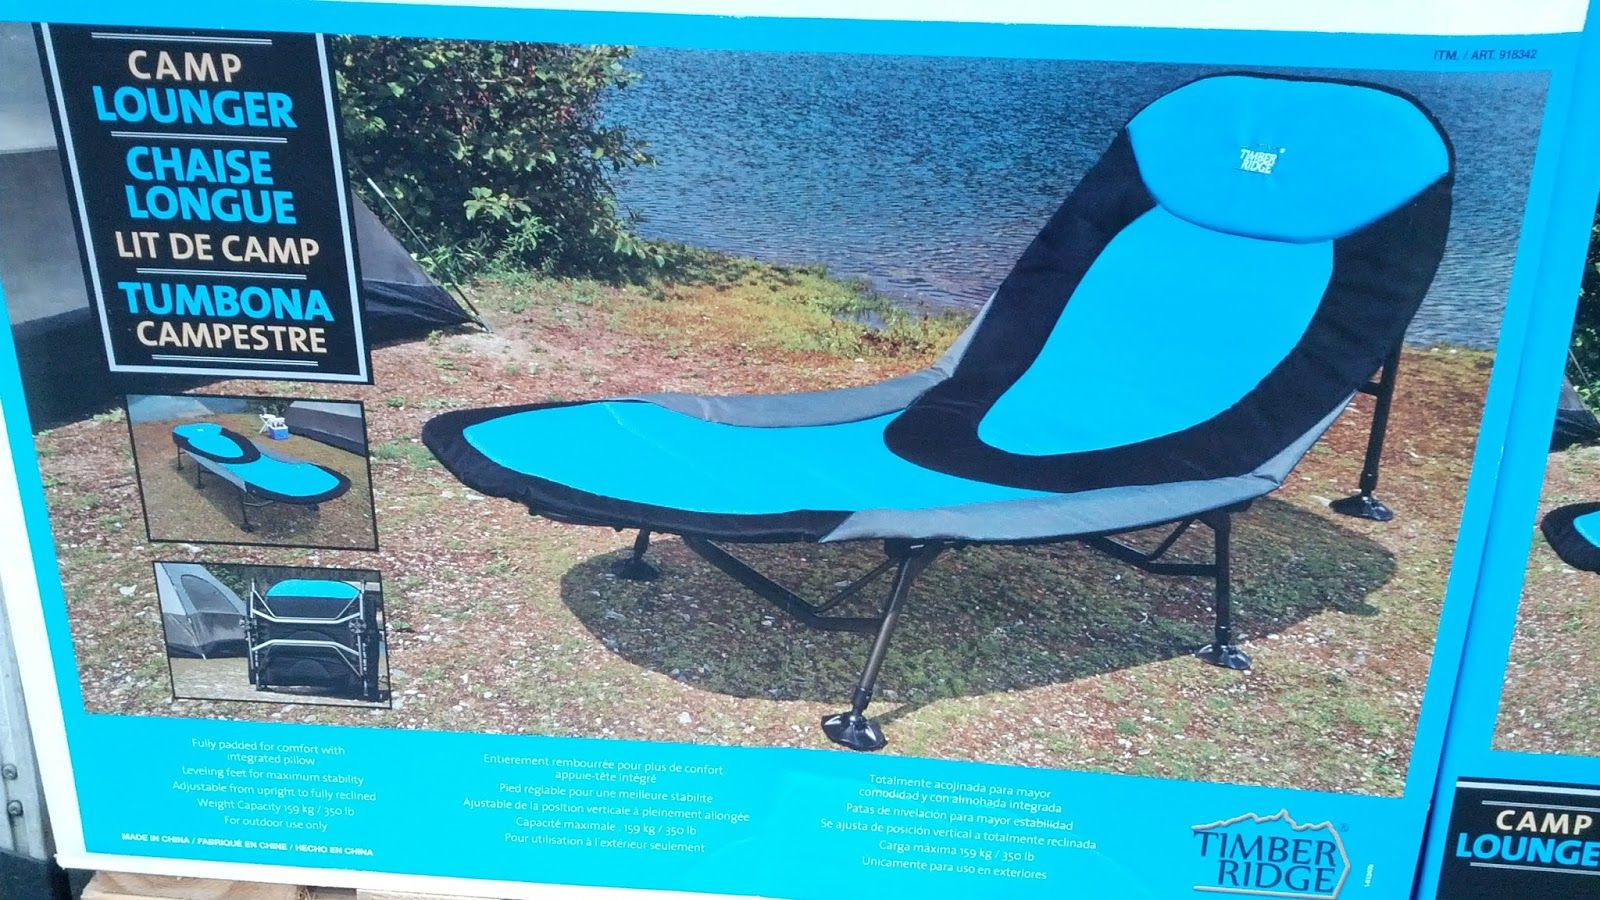 Timber Ridge Camp Lounger Chair Camping Chairs Chair Loungers